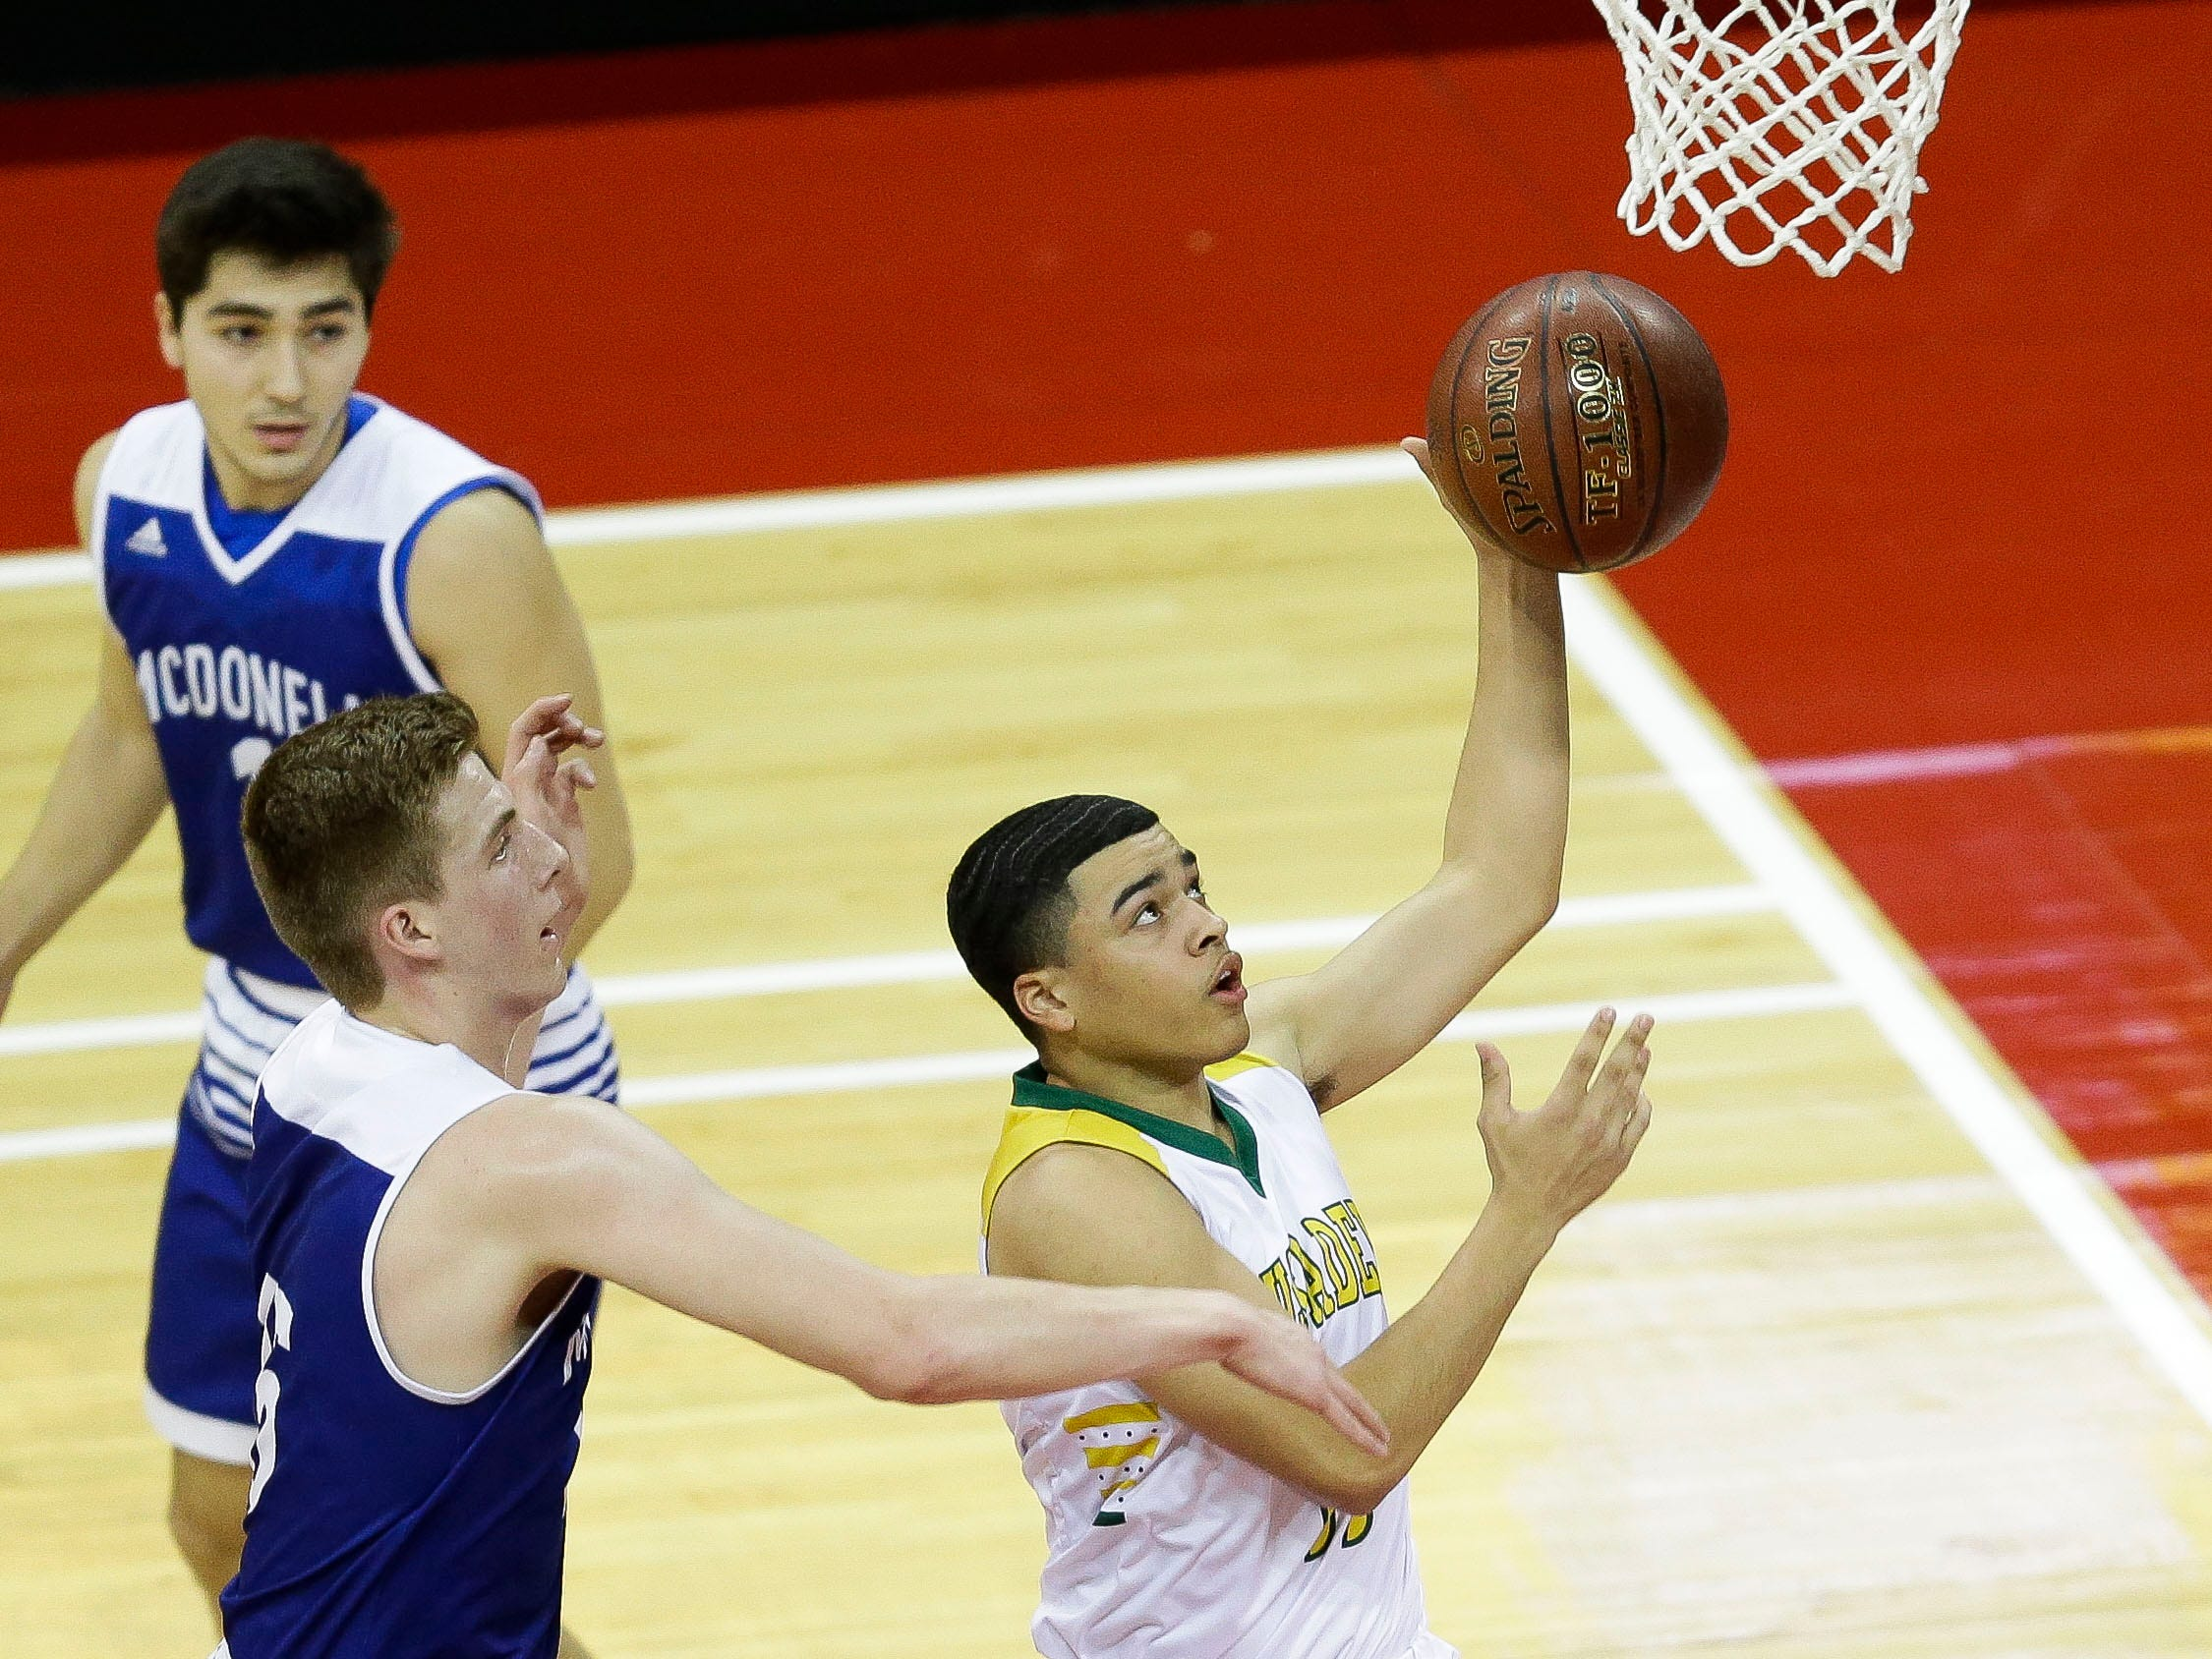 Sheboygan Lutheran High School's Michael Berger (11) goes up for a layup against McDonell Central Catholic High School in a Division 5 boys basketball state semifinal on Friday, March 15, 2019, at the Kohl Center in Madison, Wis.